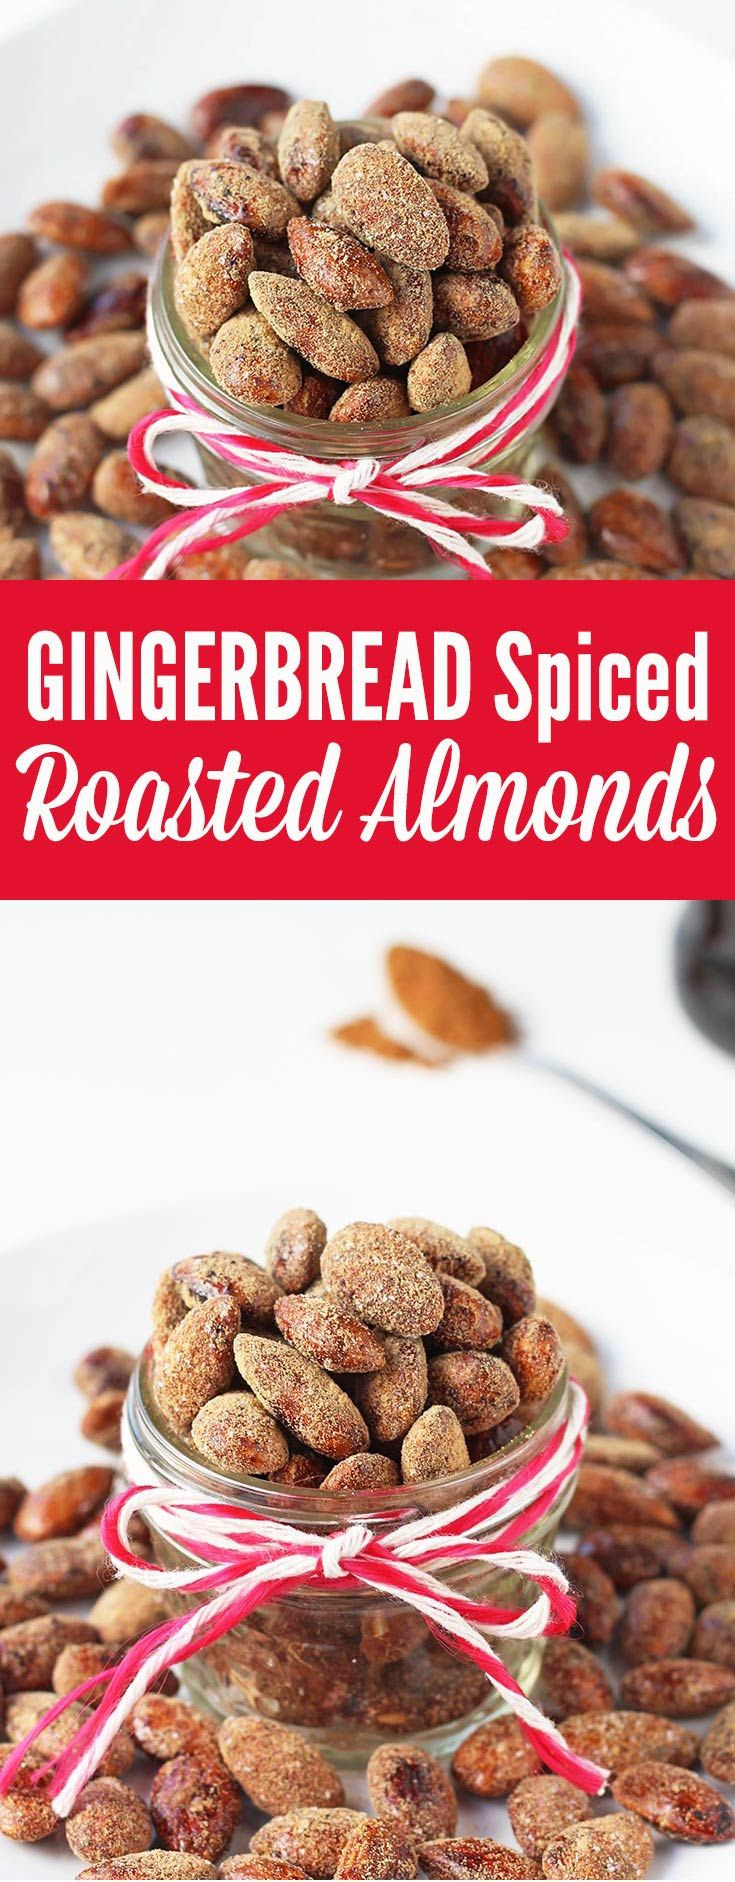 Gingerbread Spiced Roasted Almonds   Luv it all   Pinterest ...